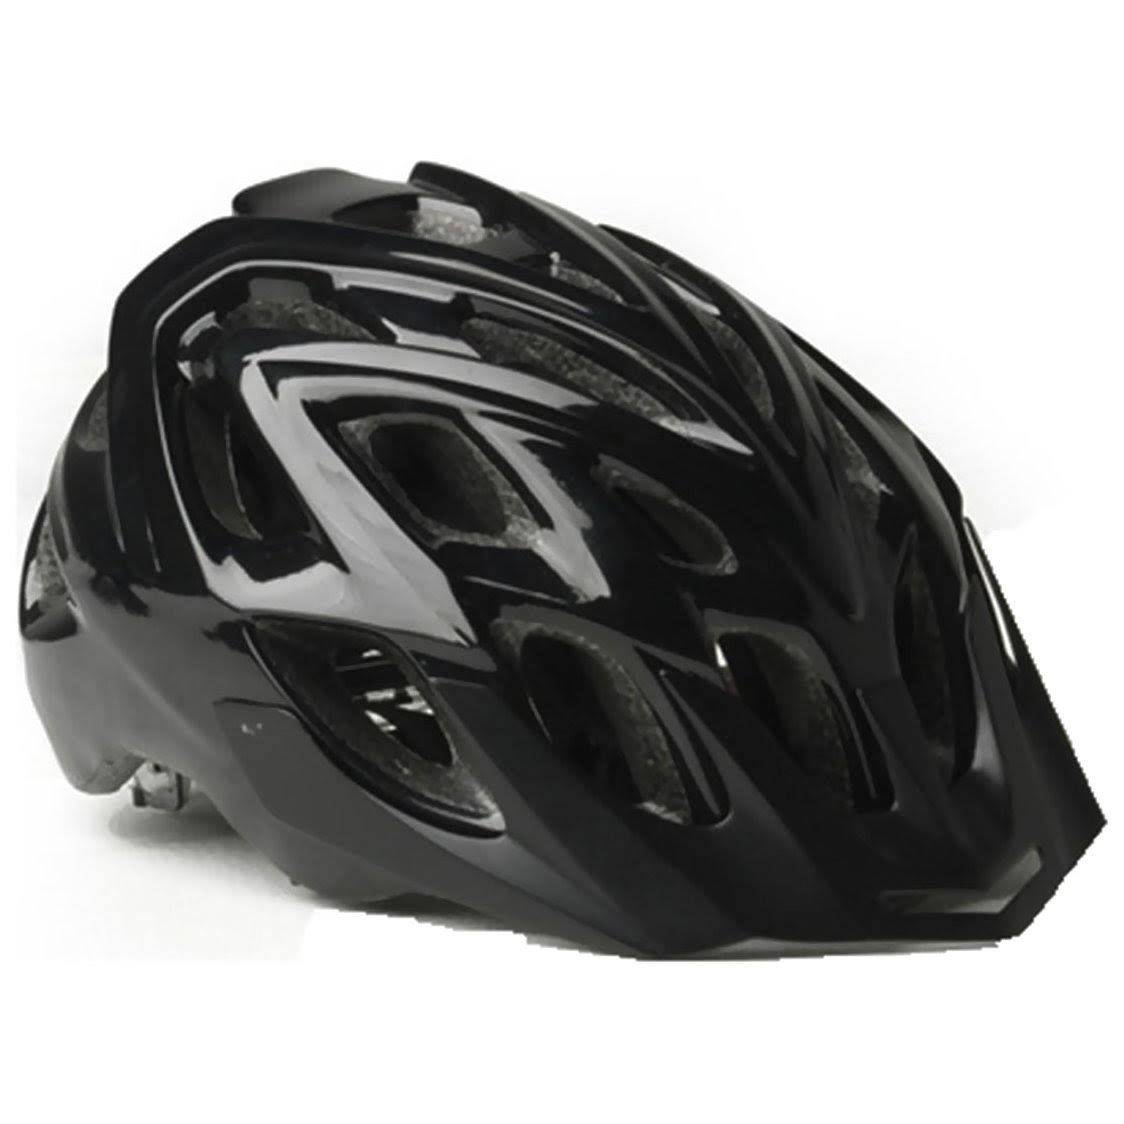 Kali Protectives Chakra Helmet - Small-Medium, Black